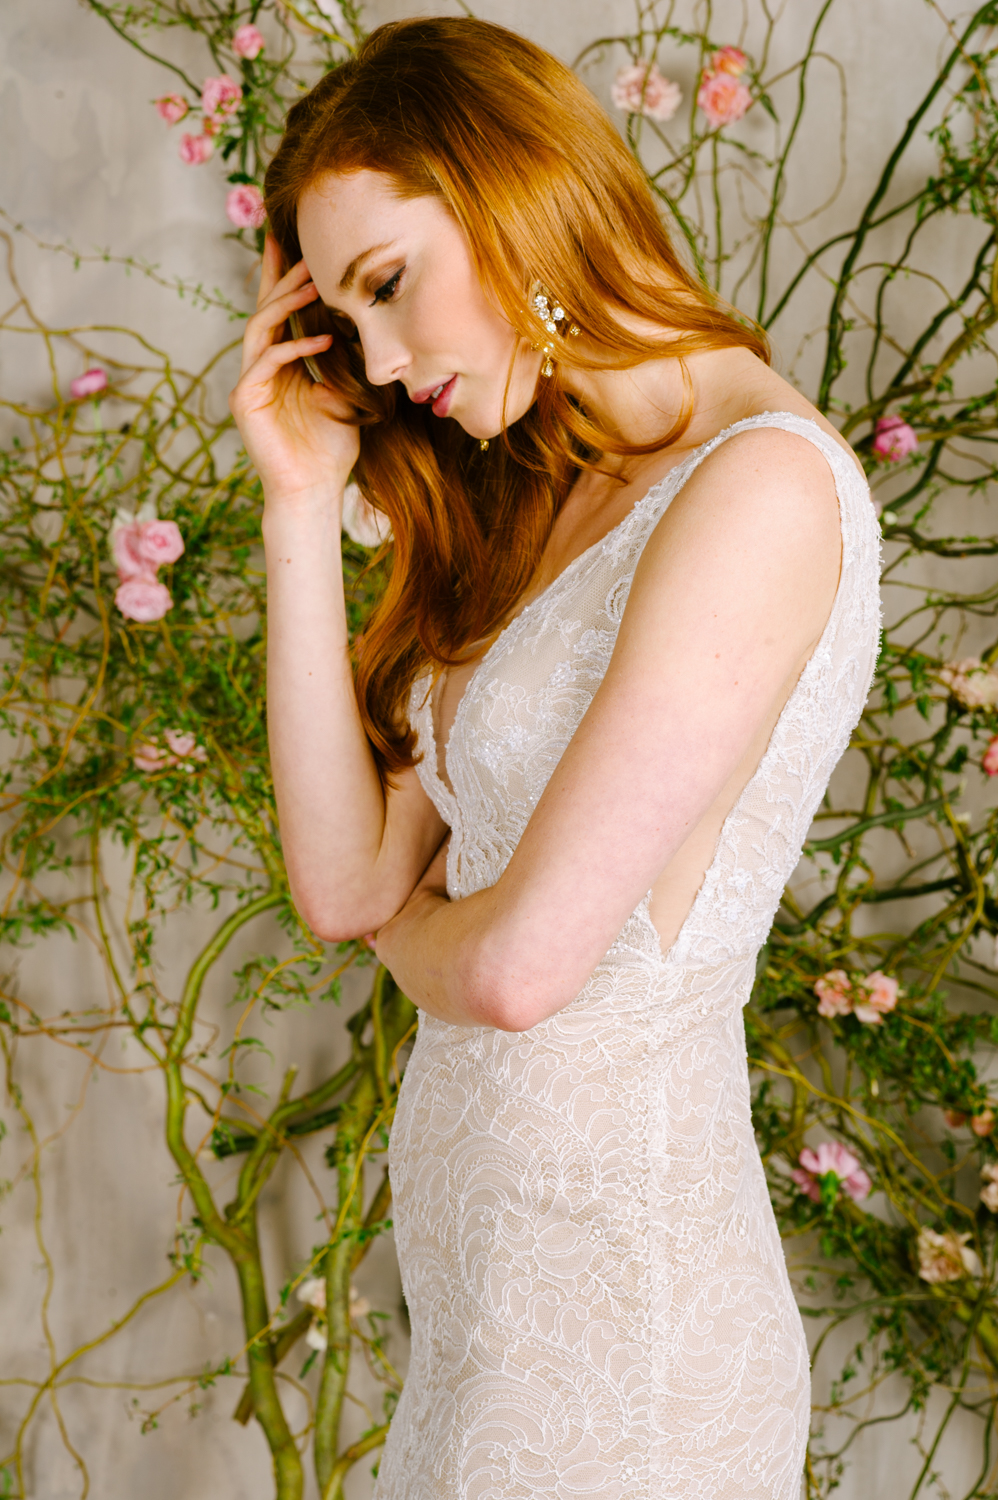 EDITORIAL.SarahSeven.Romantics.Bridal.2.jpg